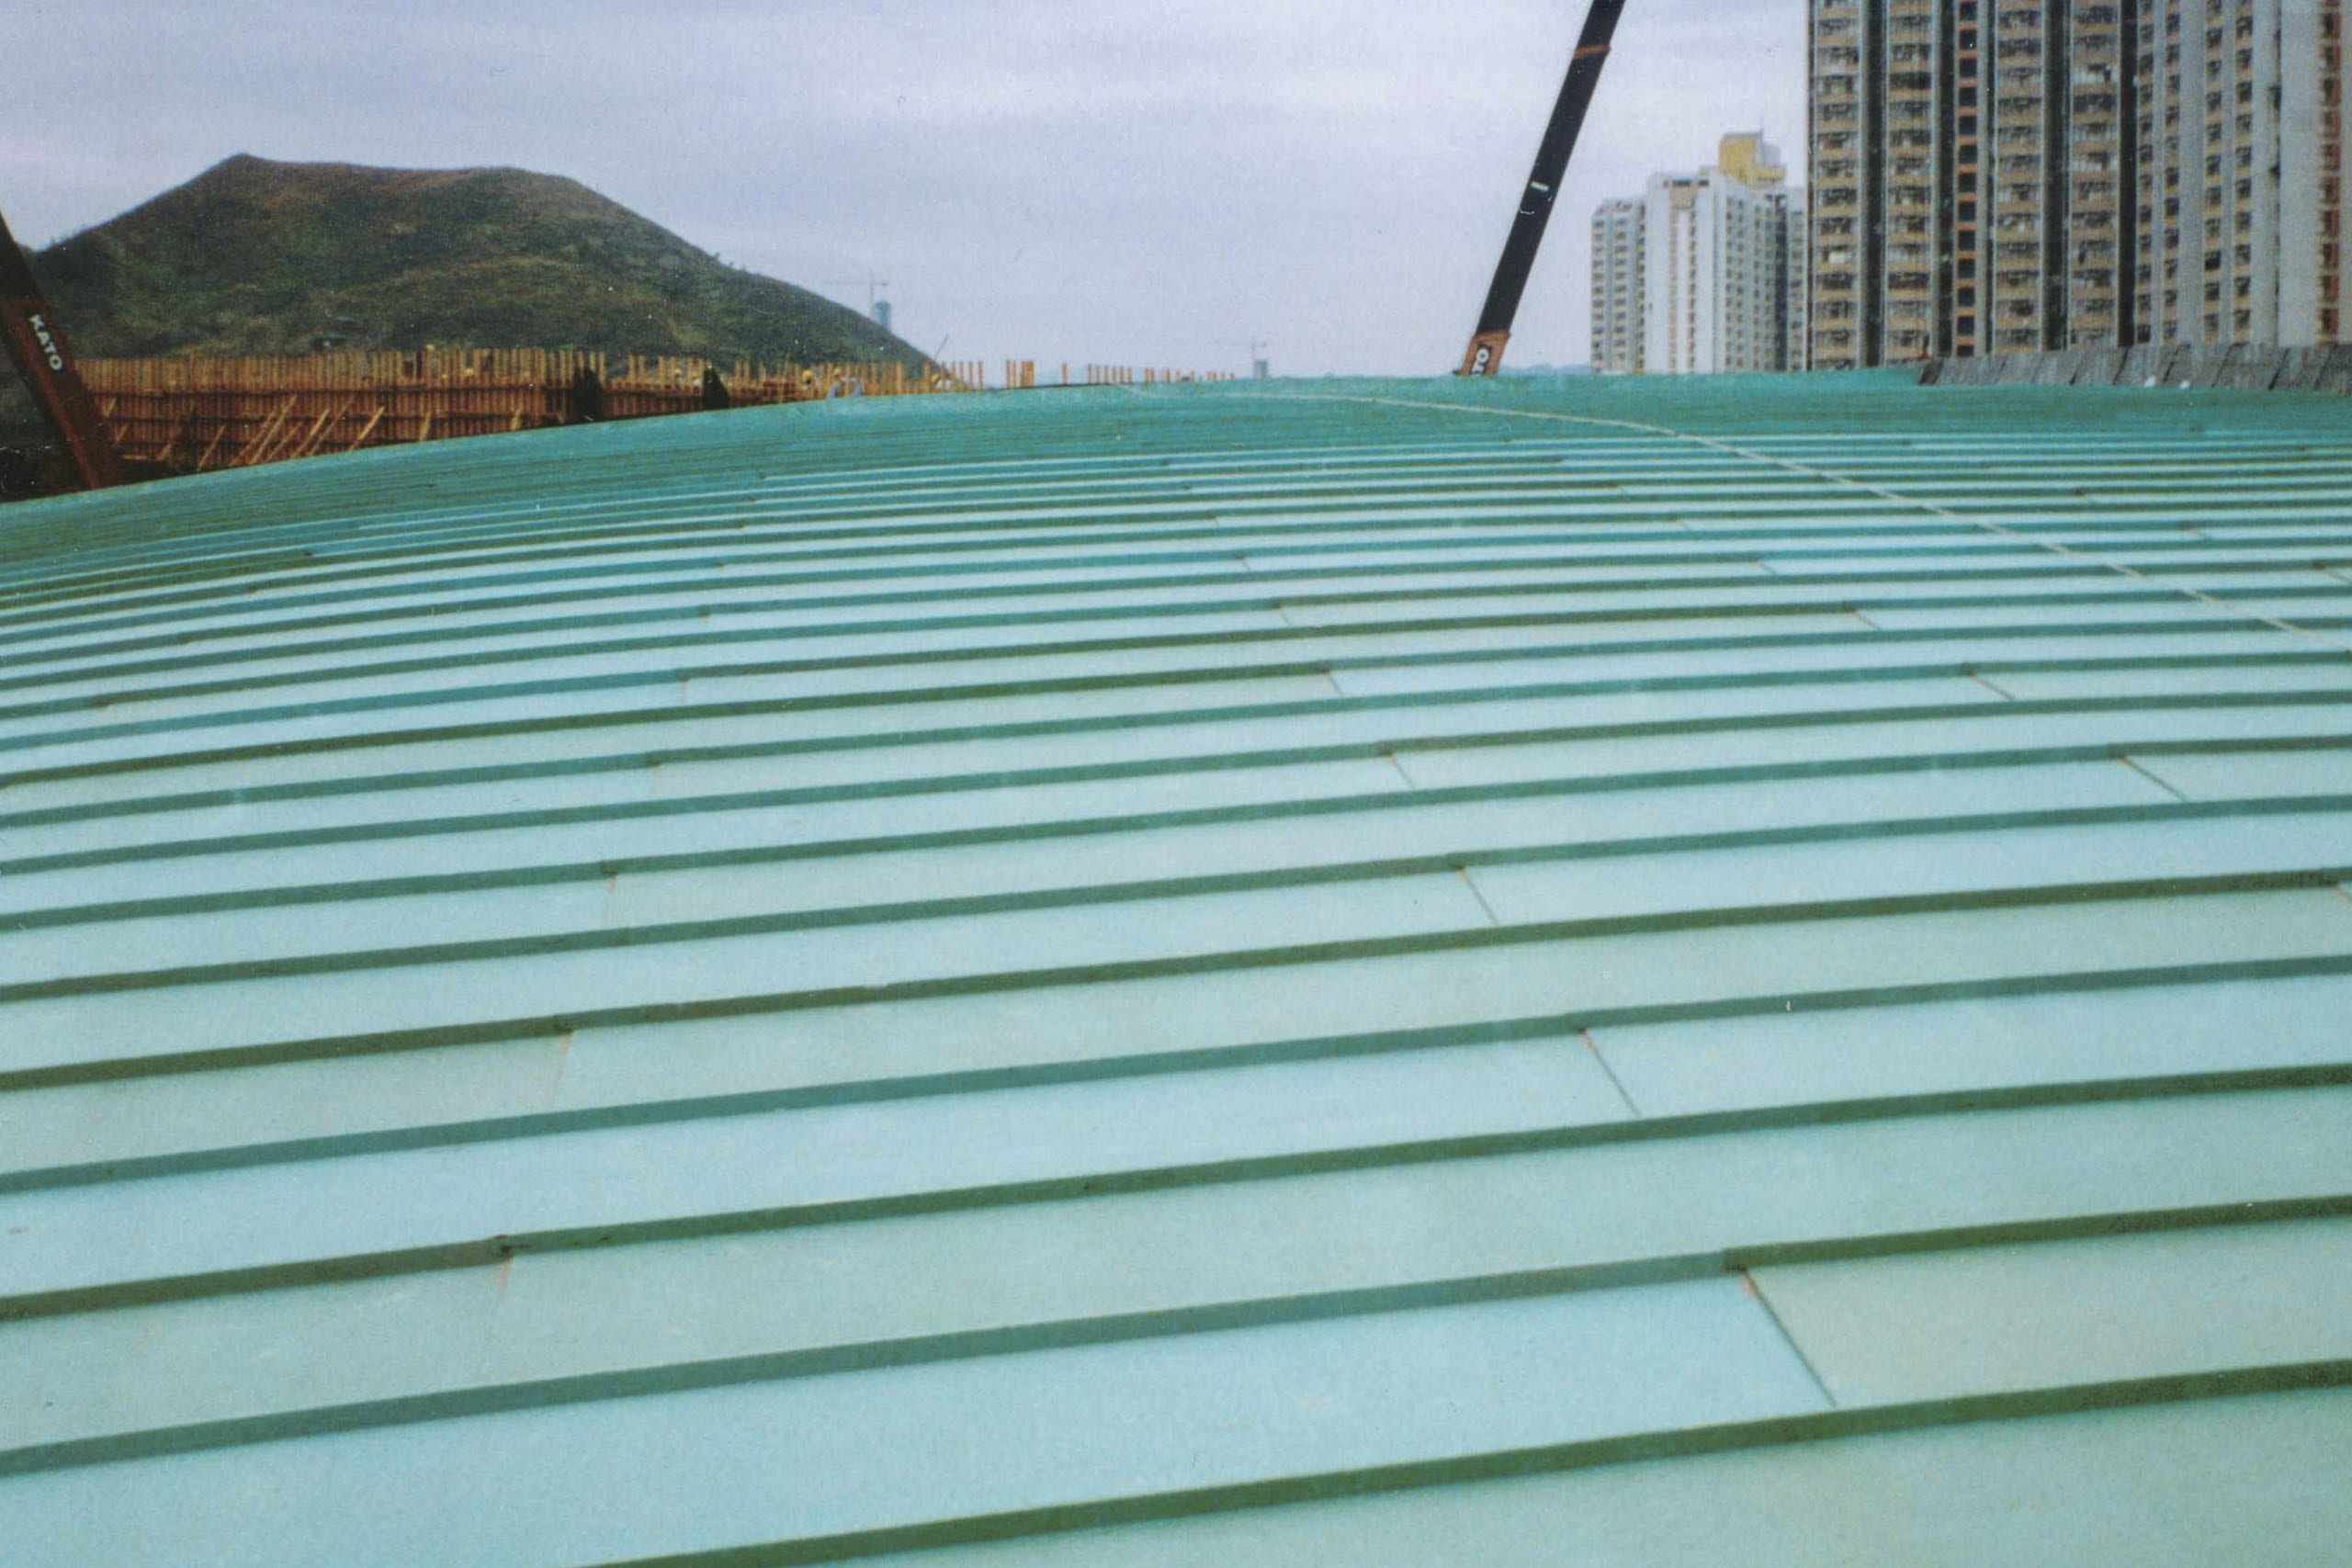 Tsing Yi Station Terminal Roof, running bond pattern on double-lock standing seam roof.